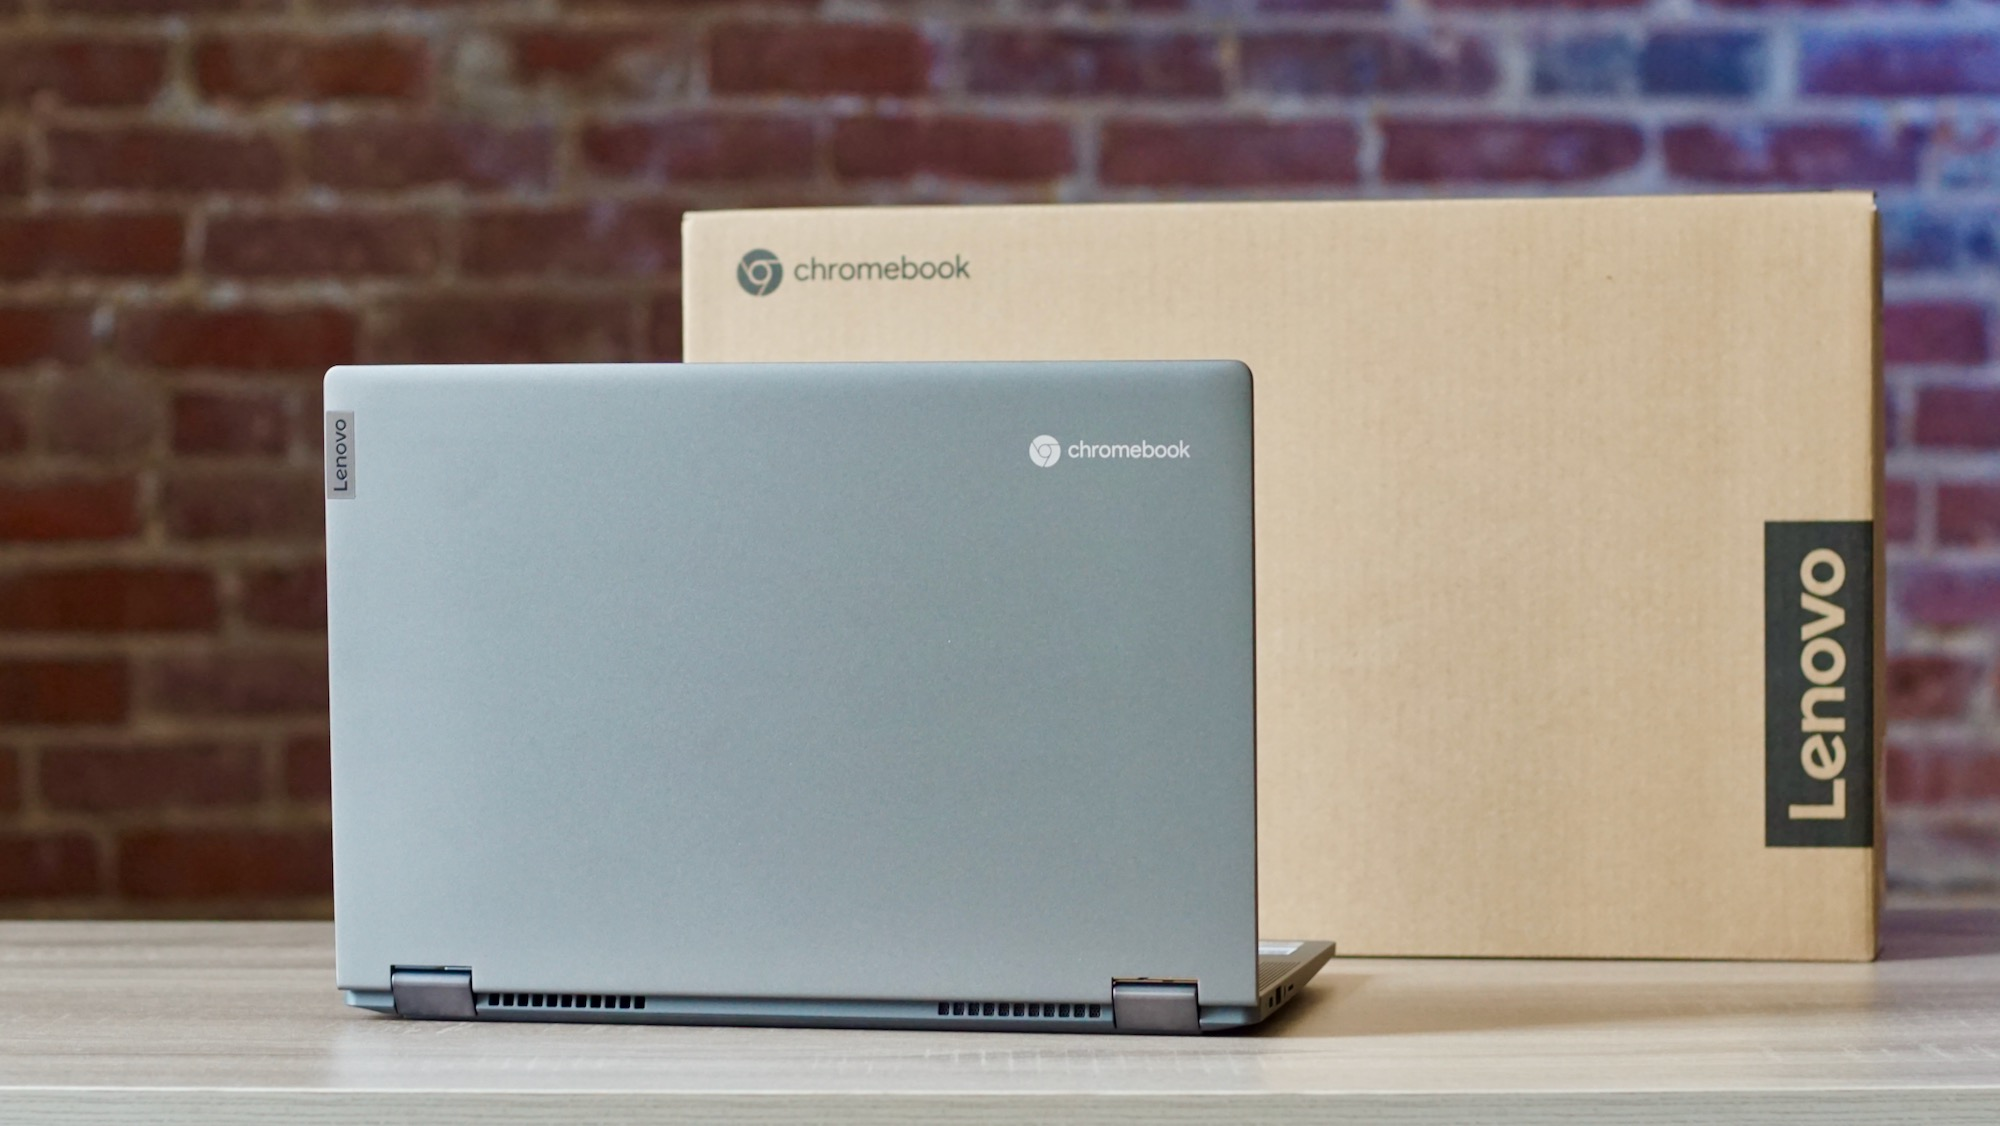 Lenovo Flex 5 Chromebook unboxing and initial impressions